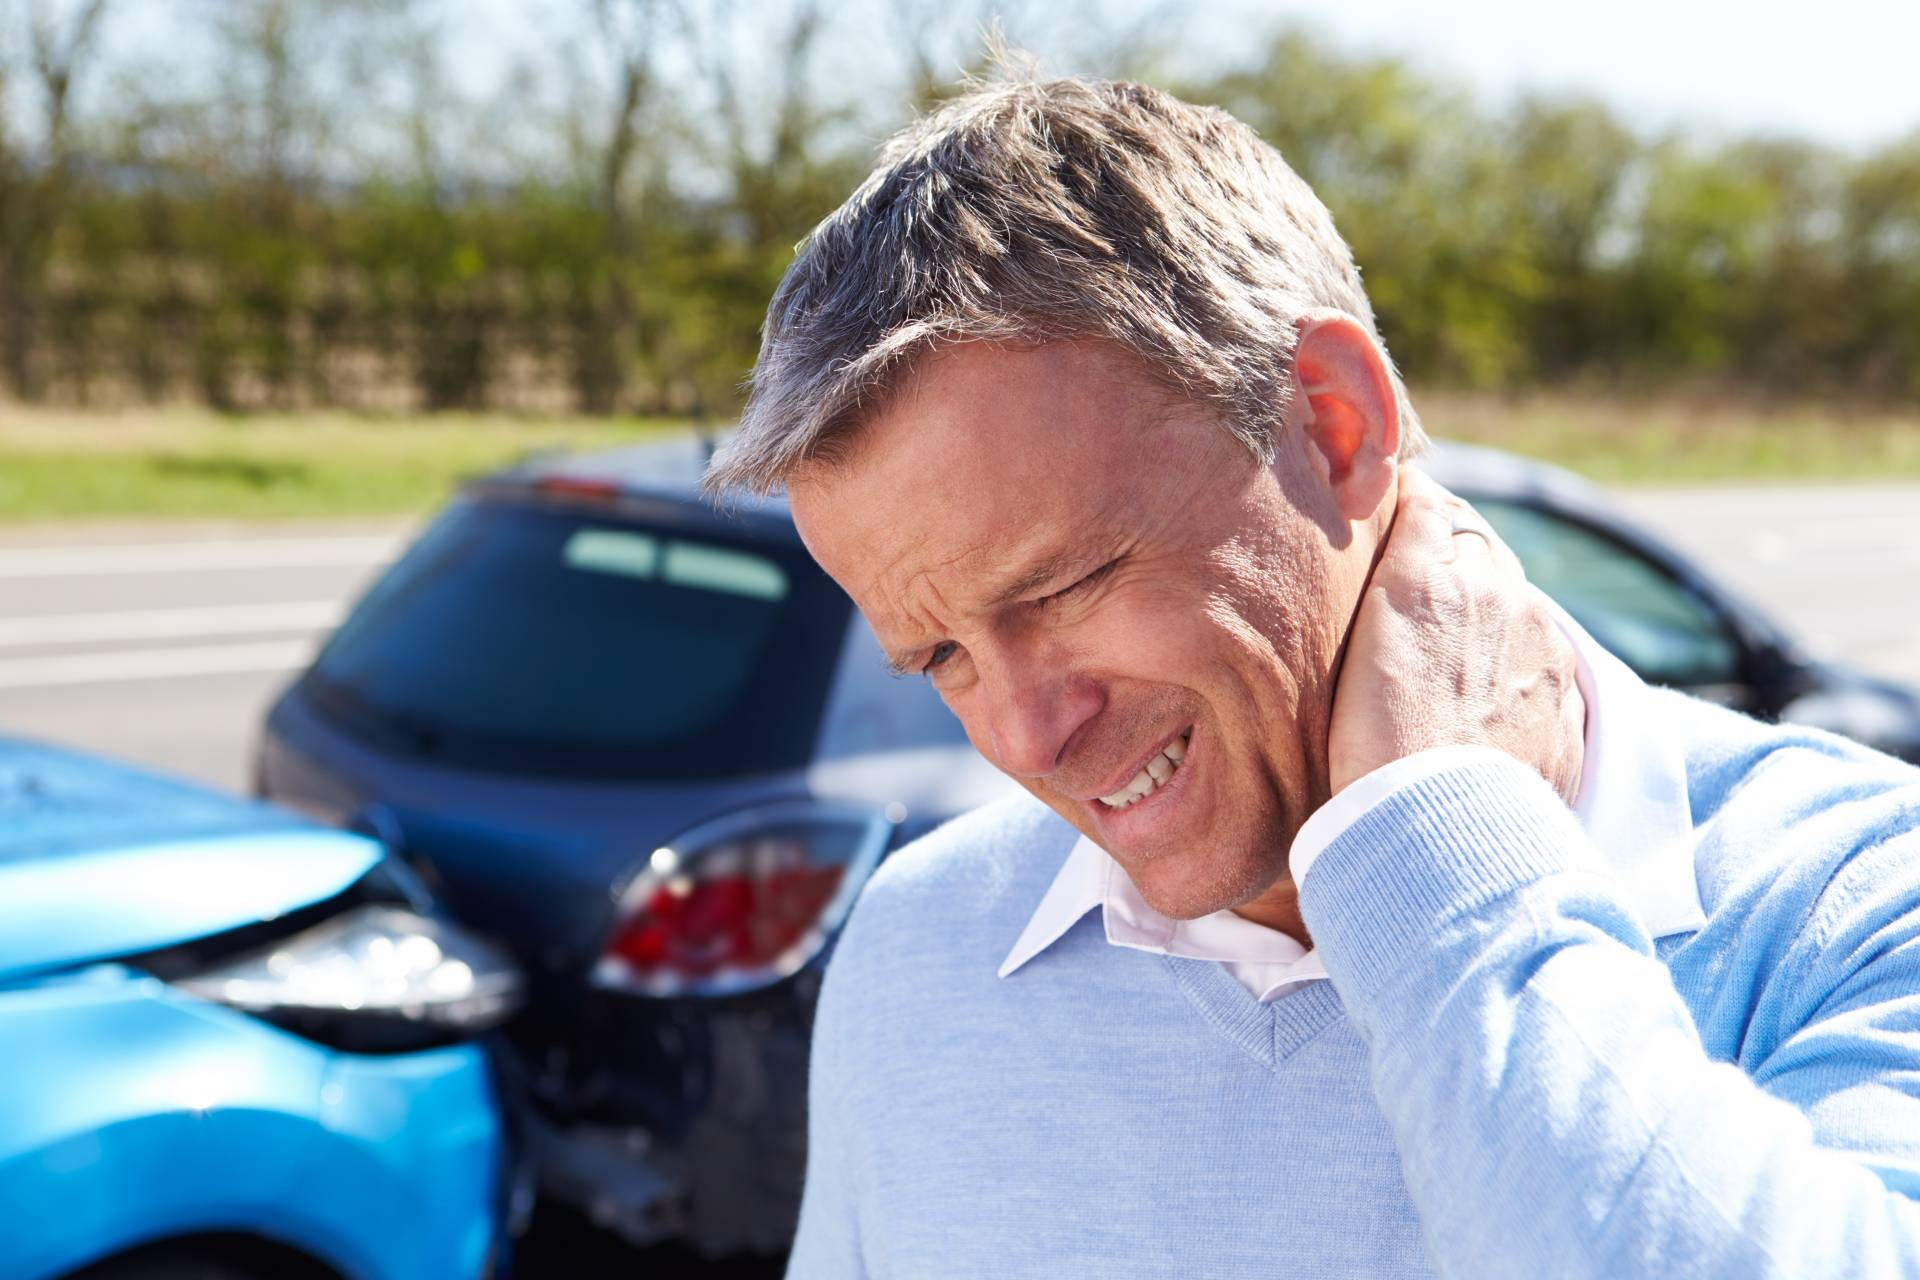 Injured in an auto accident? Call the Angell Law Firm for a free consultation.